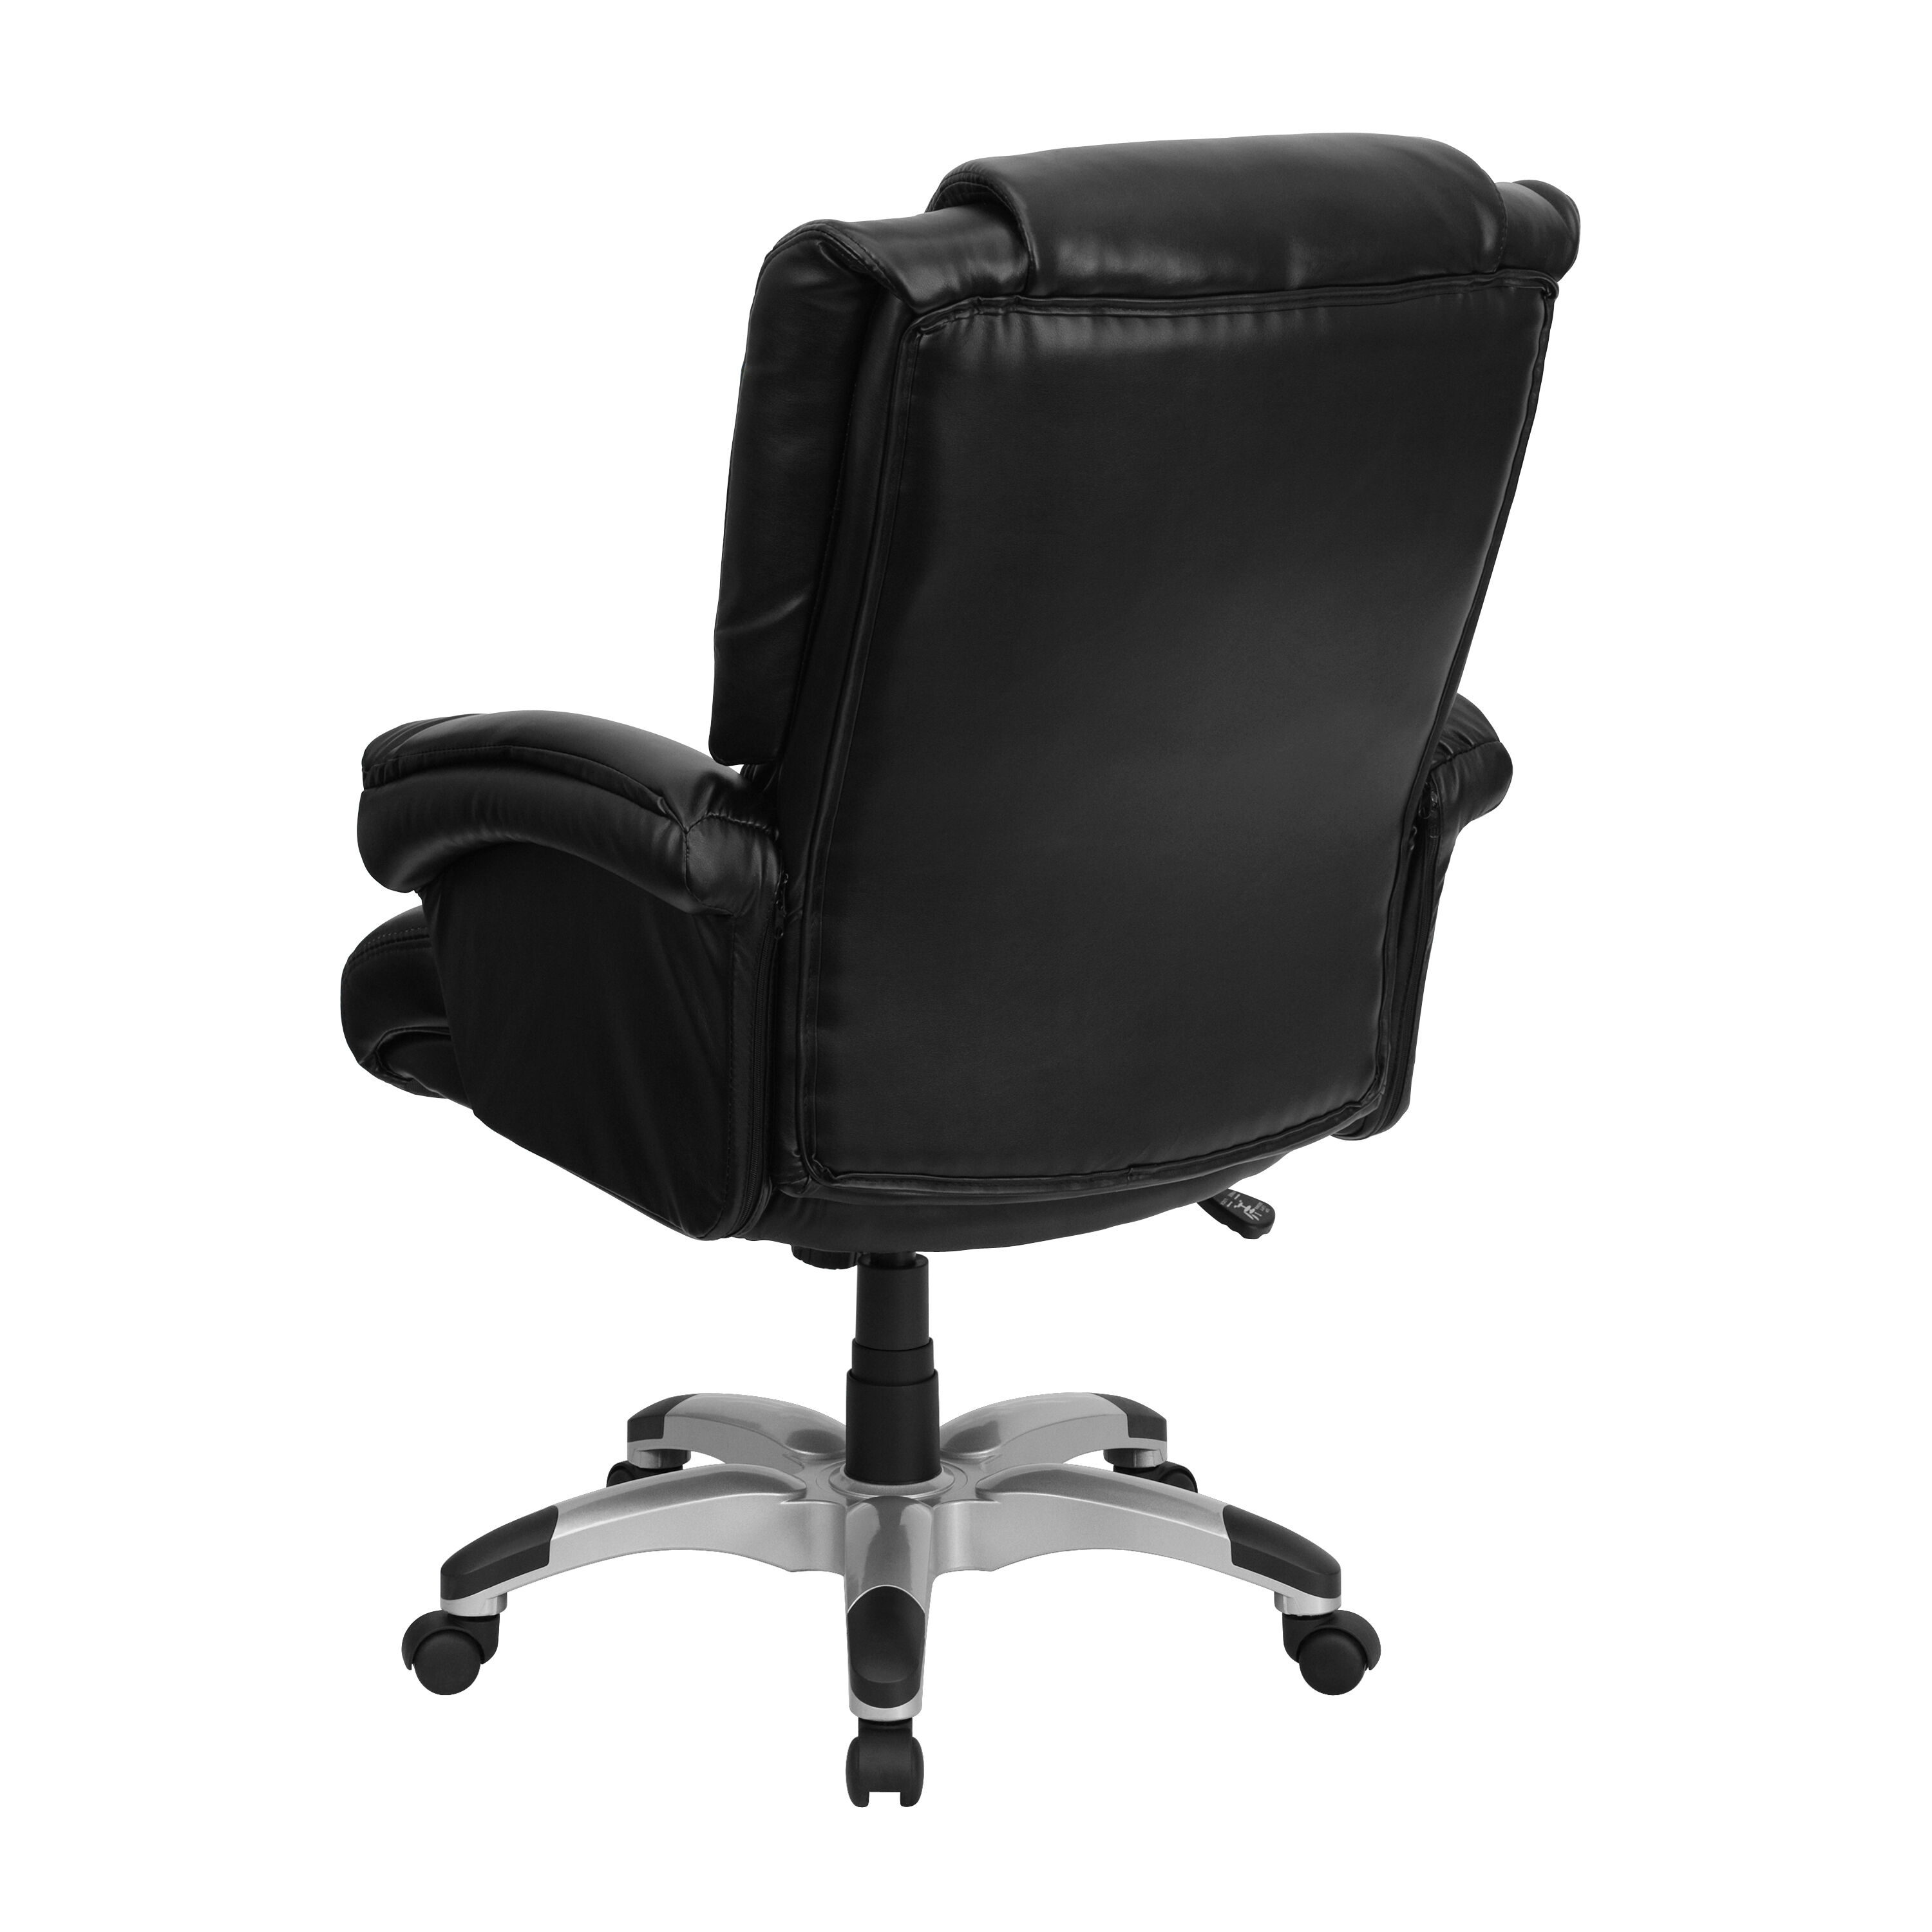 ... Our High Back Black Leather OverStuffed Executive Swivel Ergonomic  Office Chair With Fully Upholstered Arms Is ...